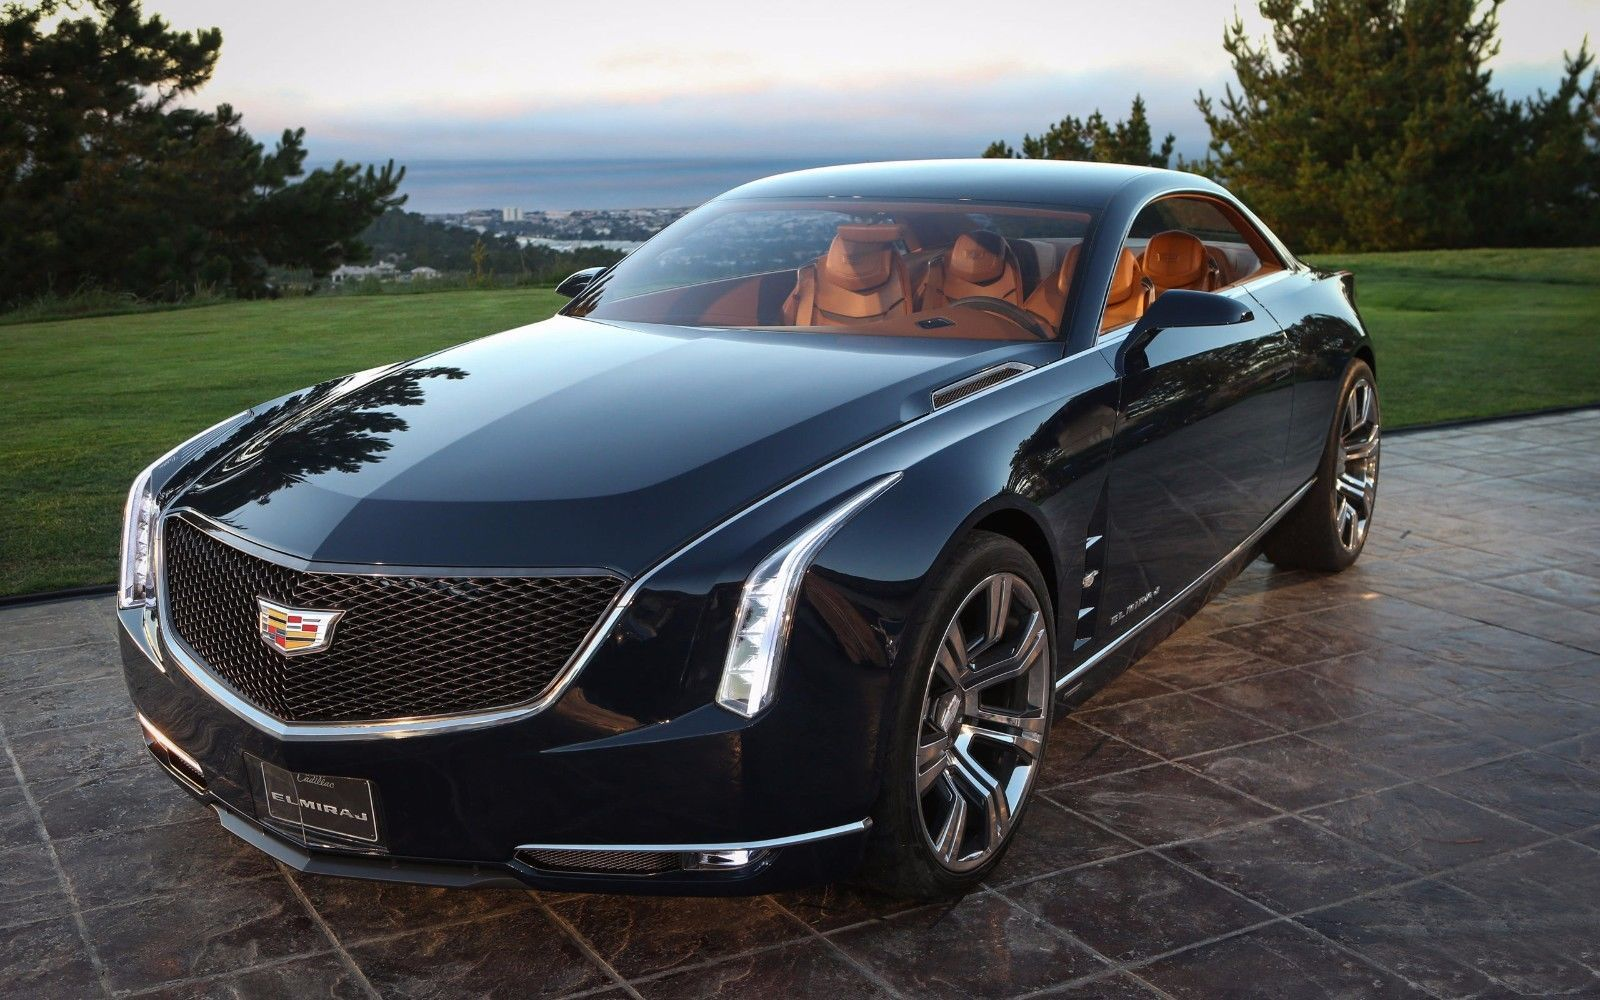 Primary image for 2013 Cadillac Elmiraj Concept 2 - 24X36 inch poster, sports car, muscle car